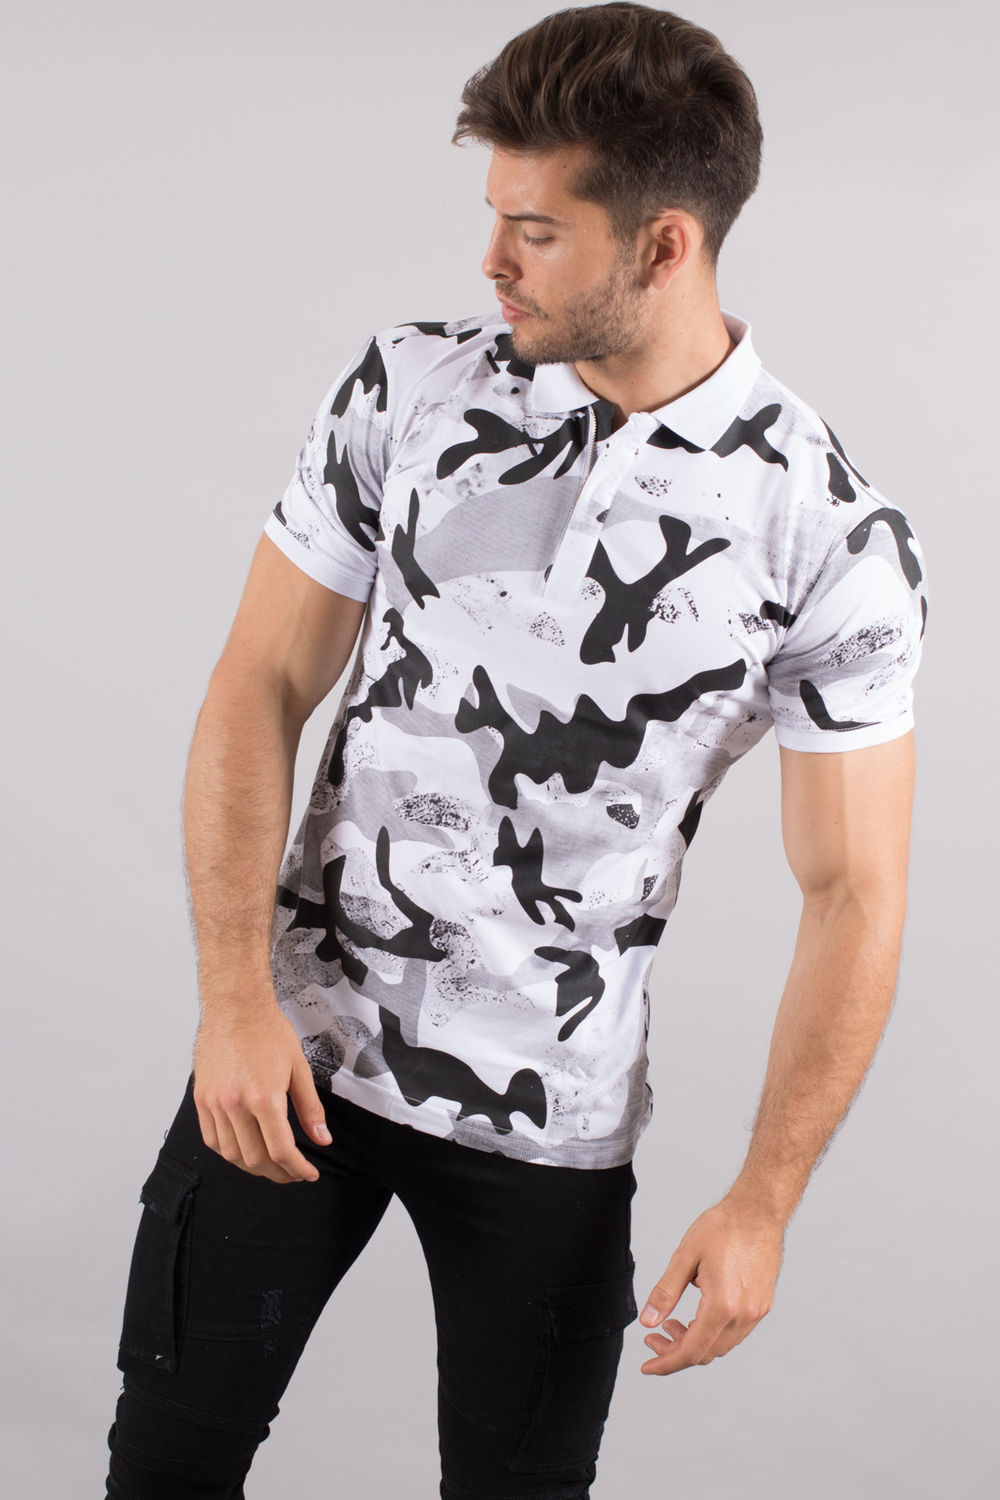 Camouflage Homme F100 Polo Homme Polo Blanc Blanc uTJcKF3l1